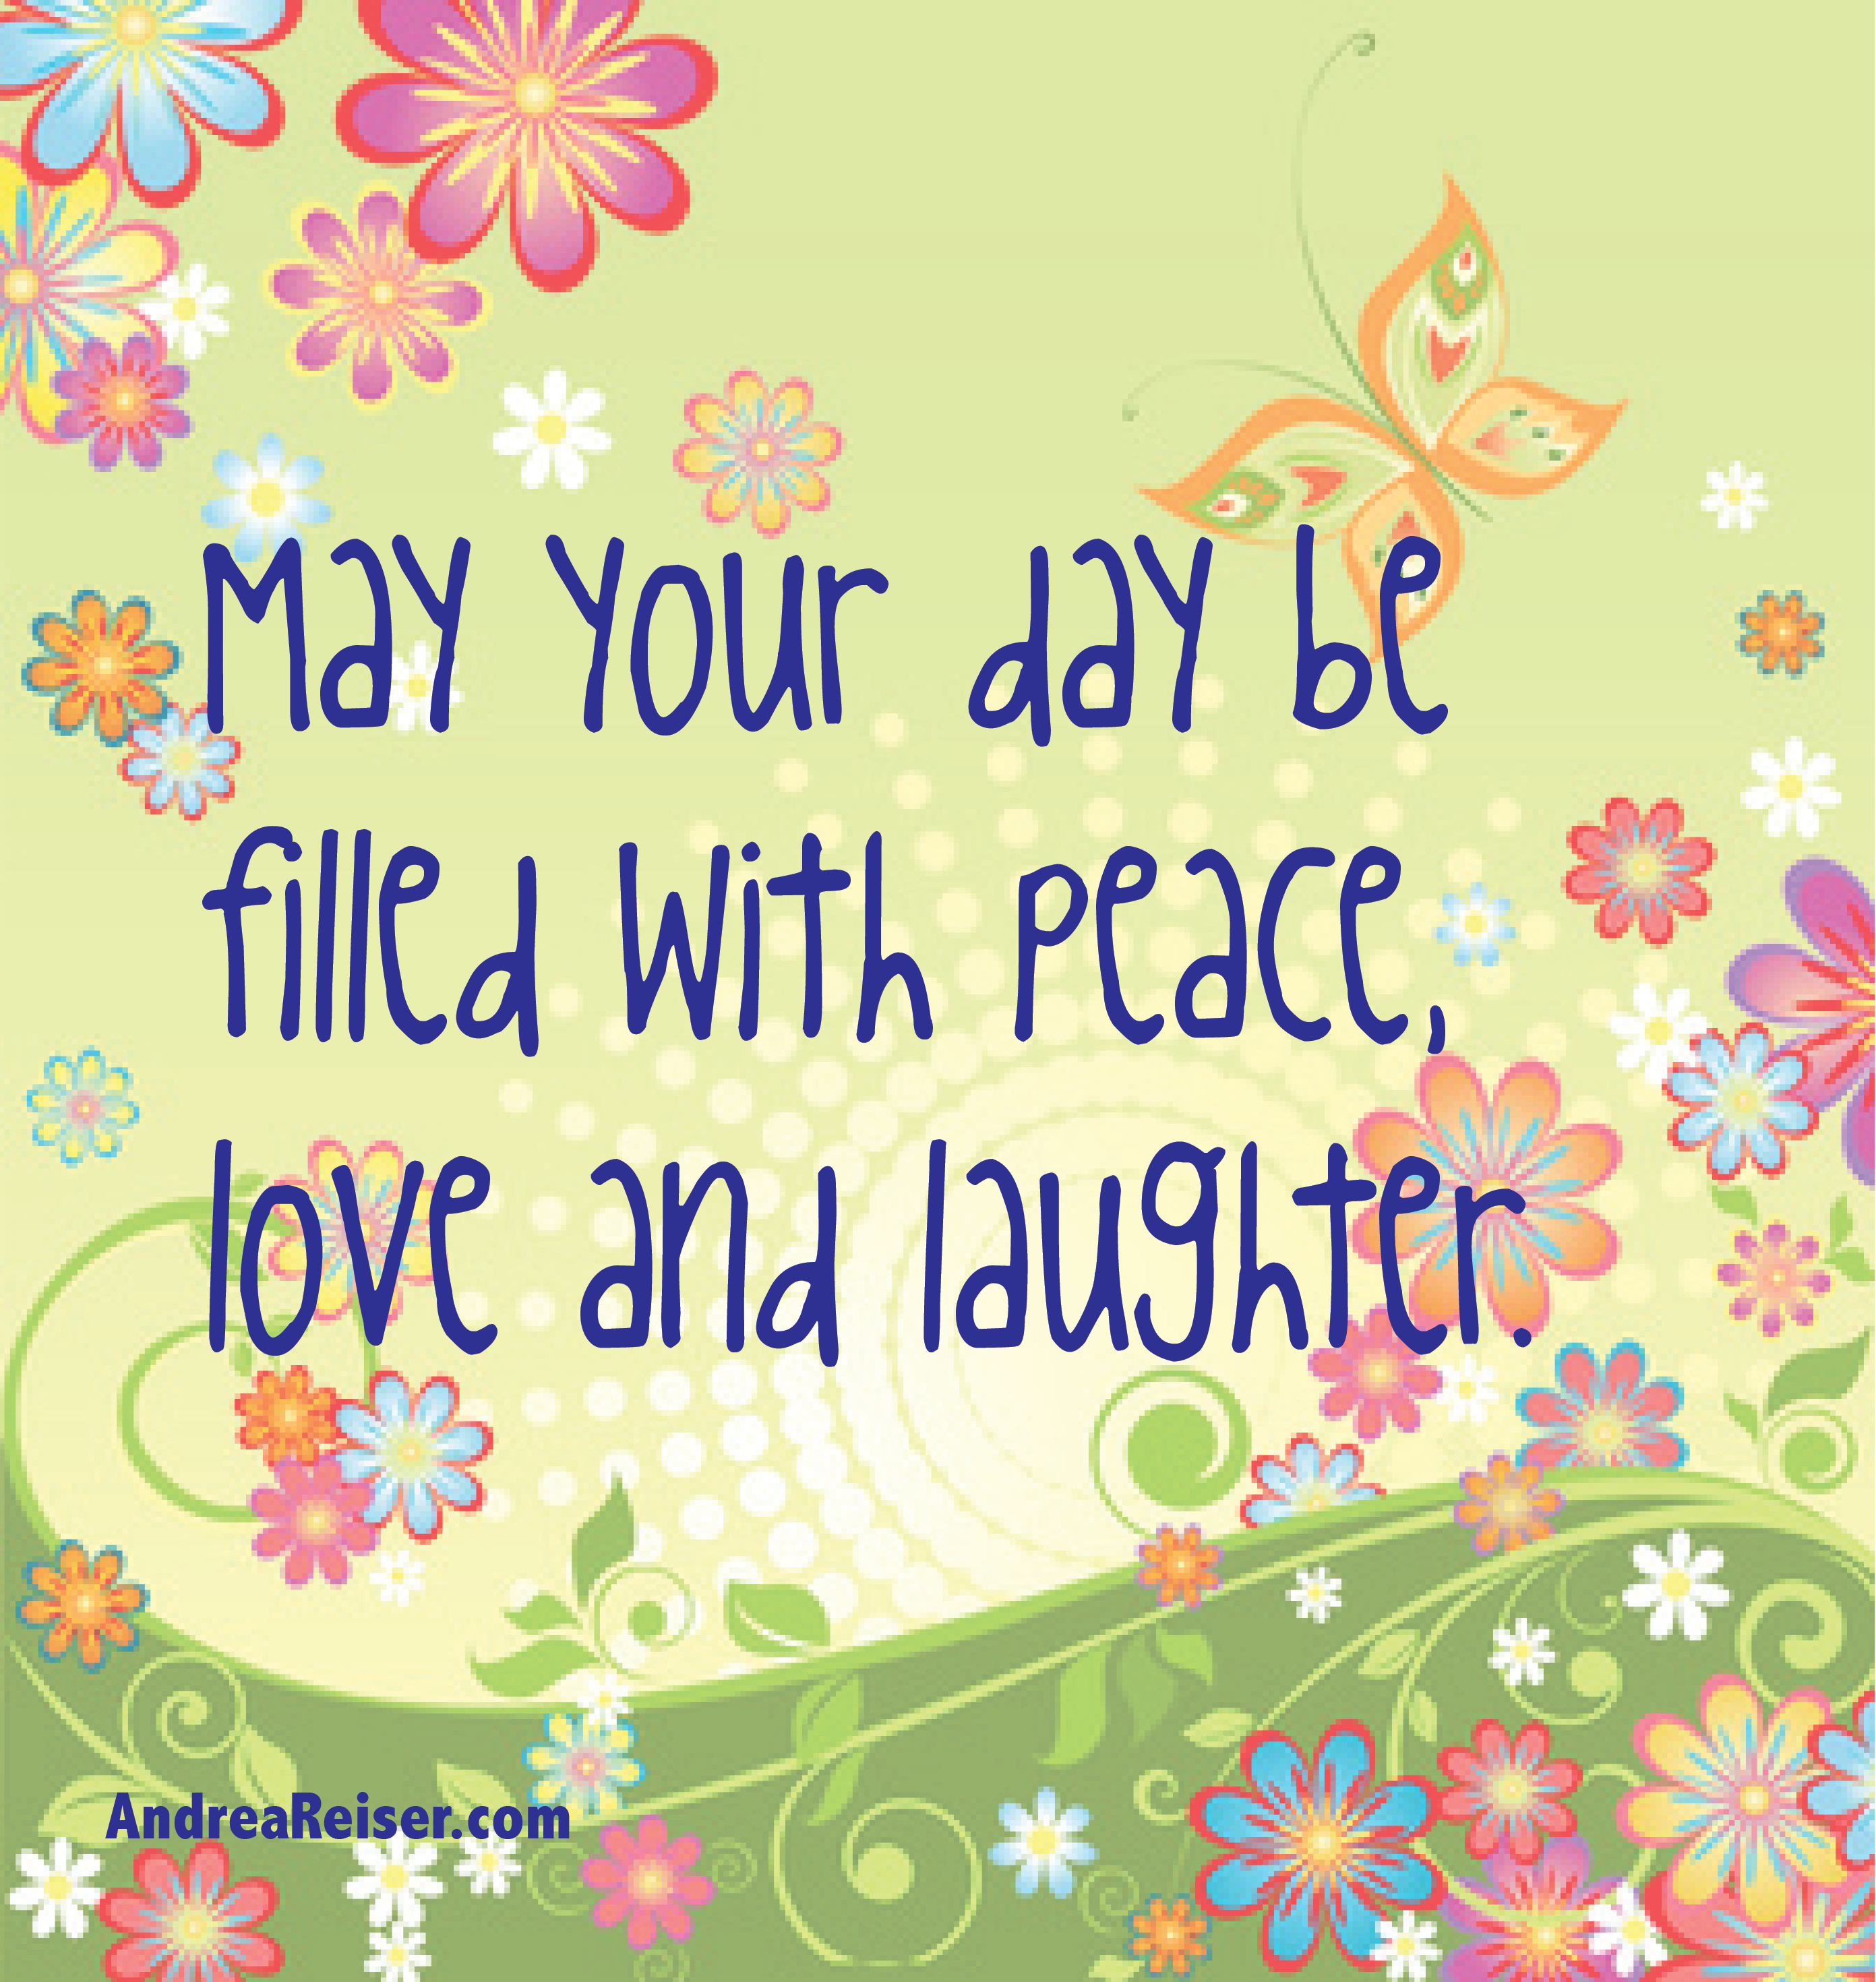 May-your-day-be-filled-with-peace-love-laughter.jpg